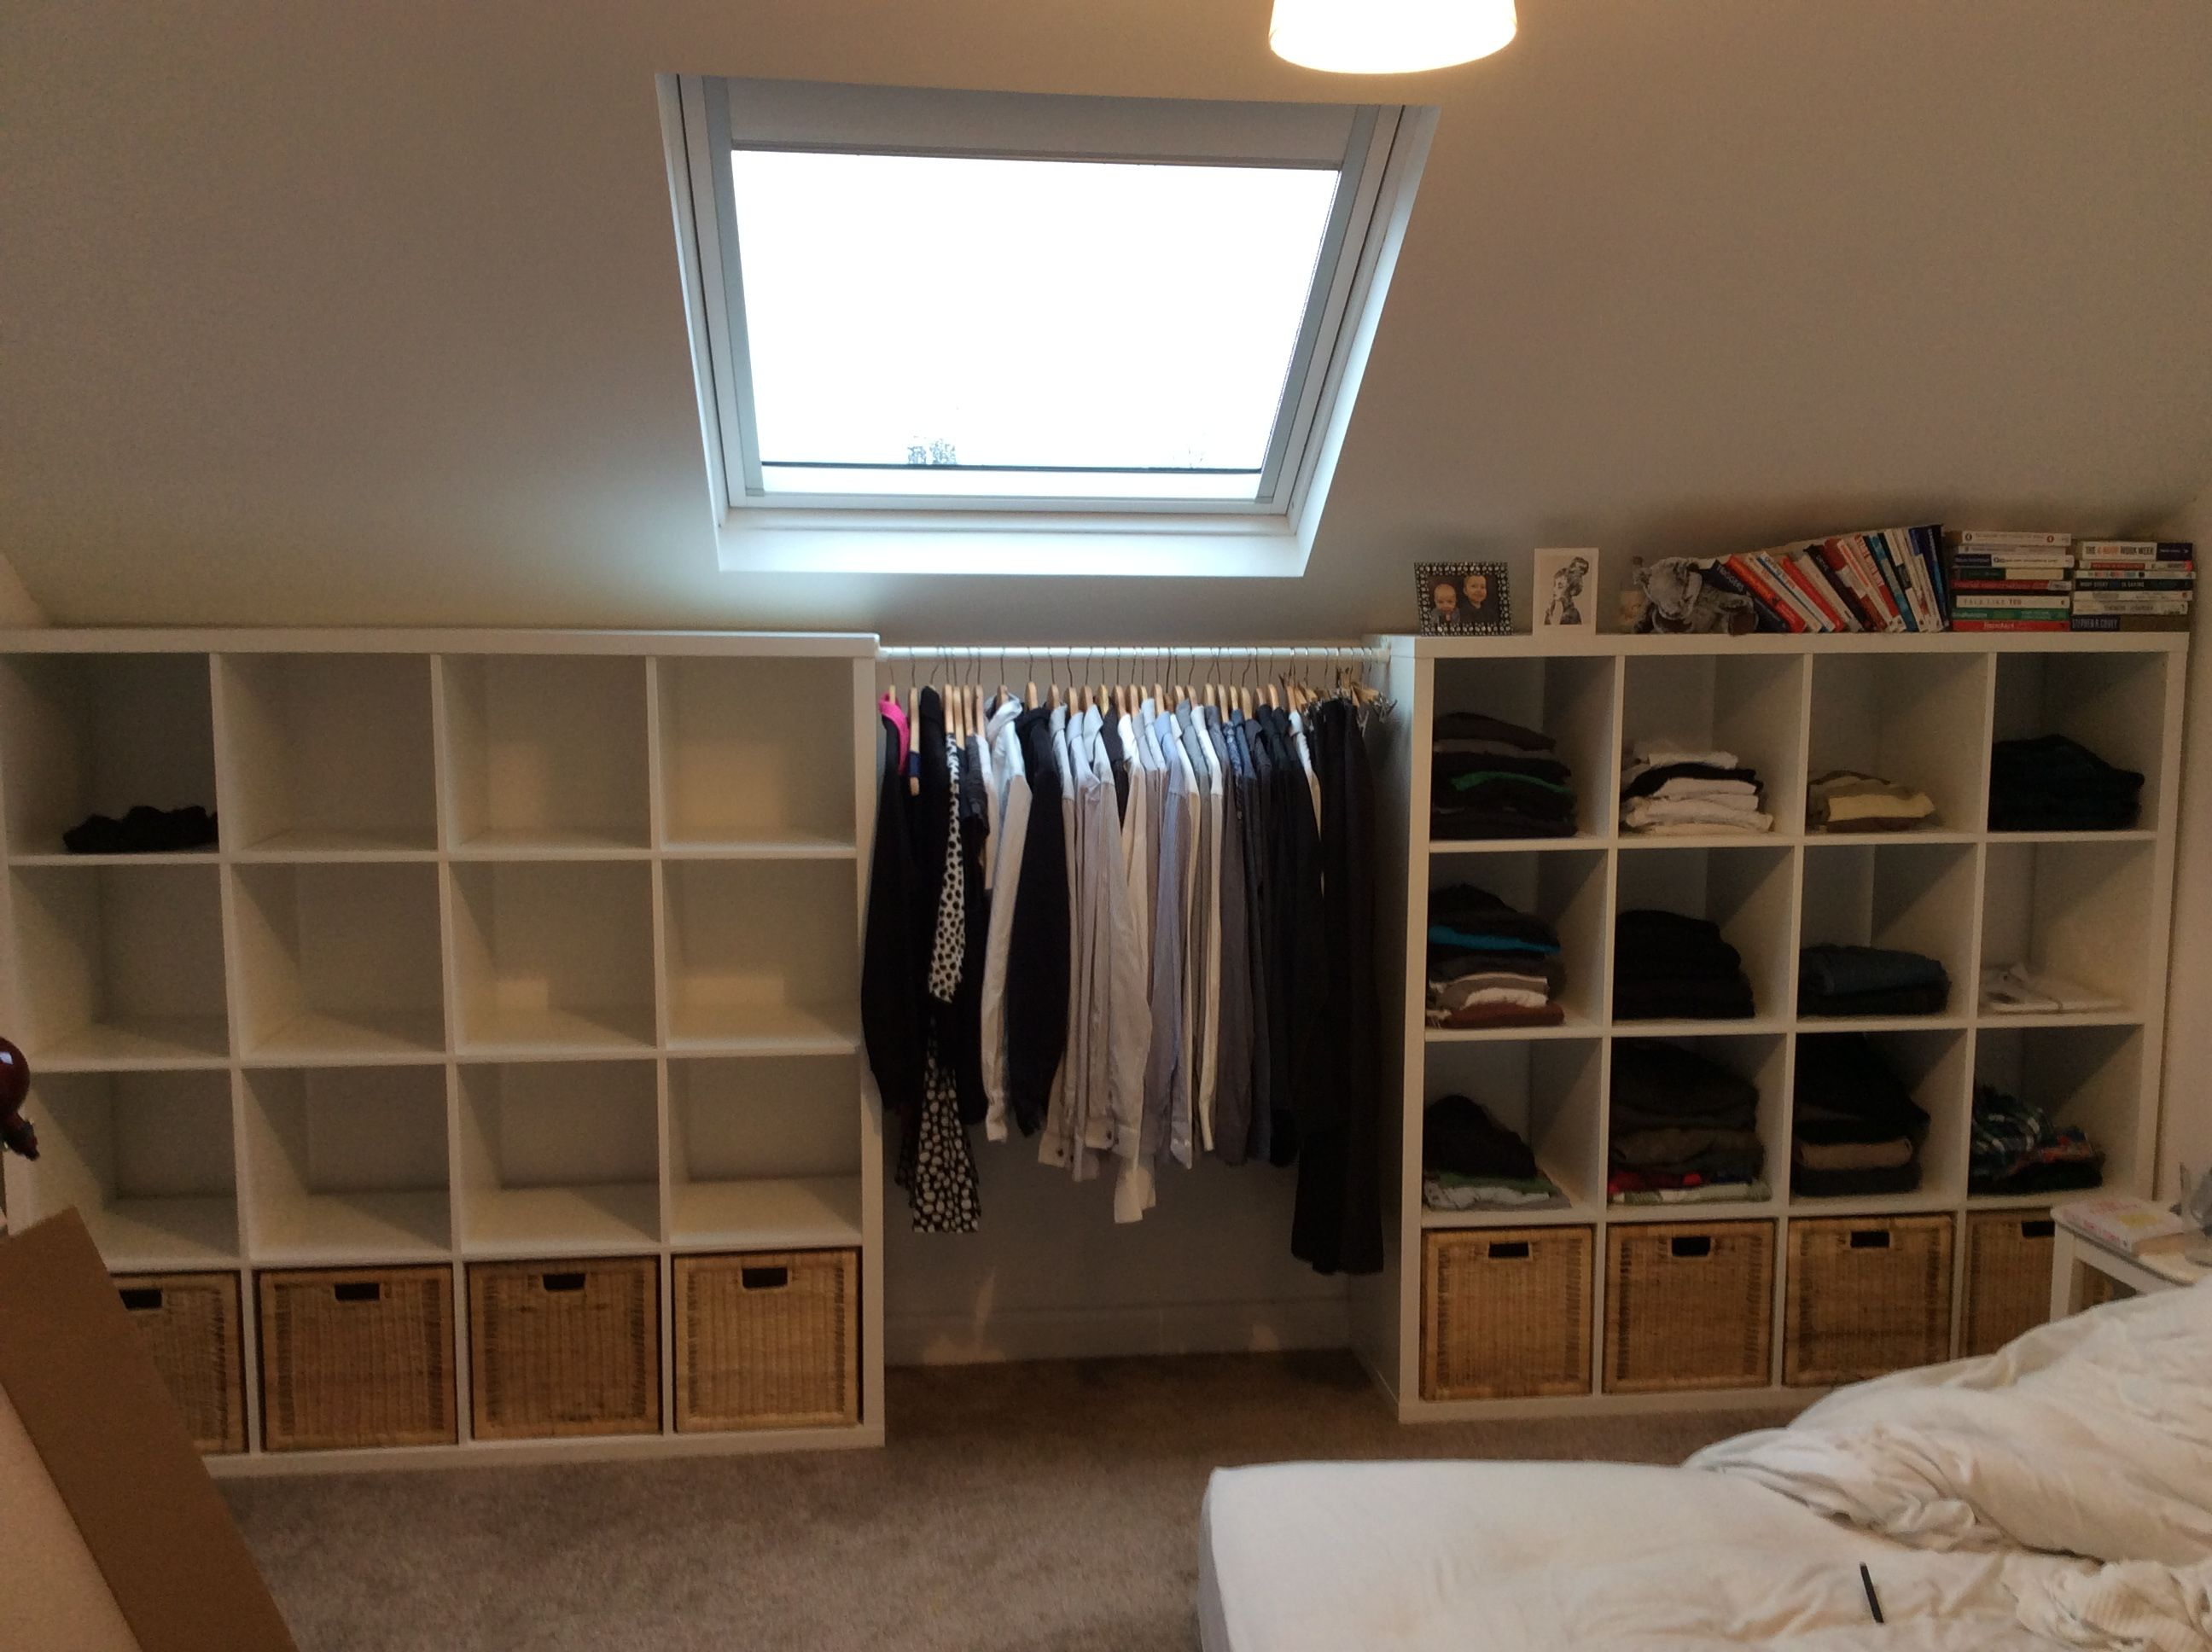 ikea kallax clothes storage his hers wardrobes open. Black Bedroom Furniture Sets. Home Design Ideas